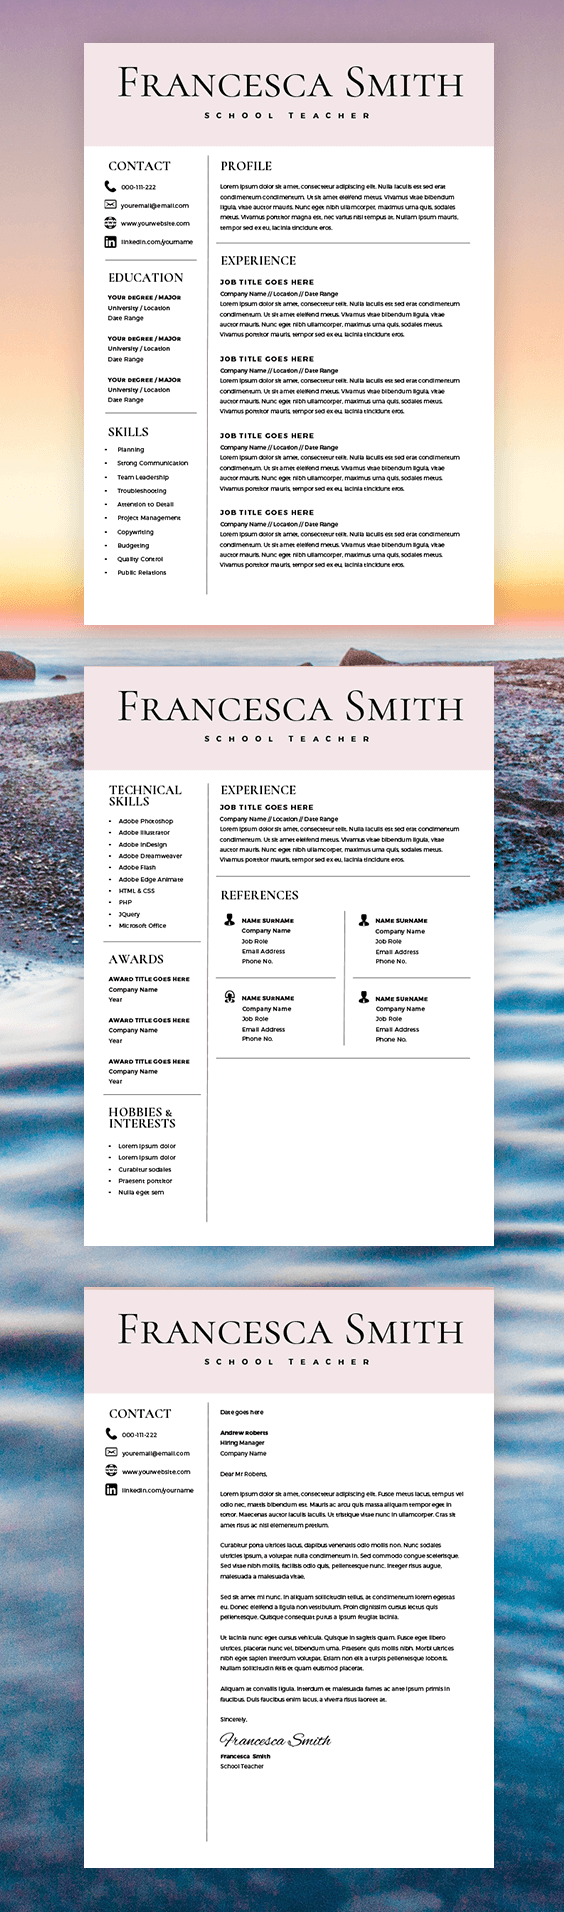 Teacher Resume Template - Resume for Teacher - Cover Letter for ...